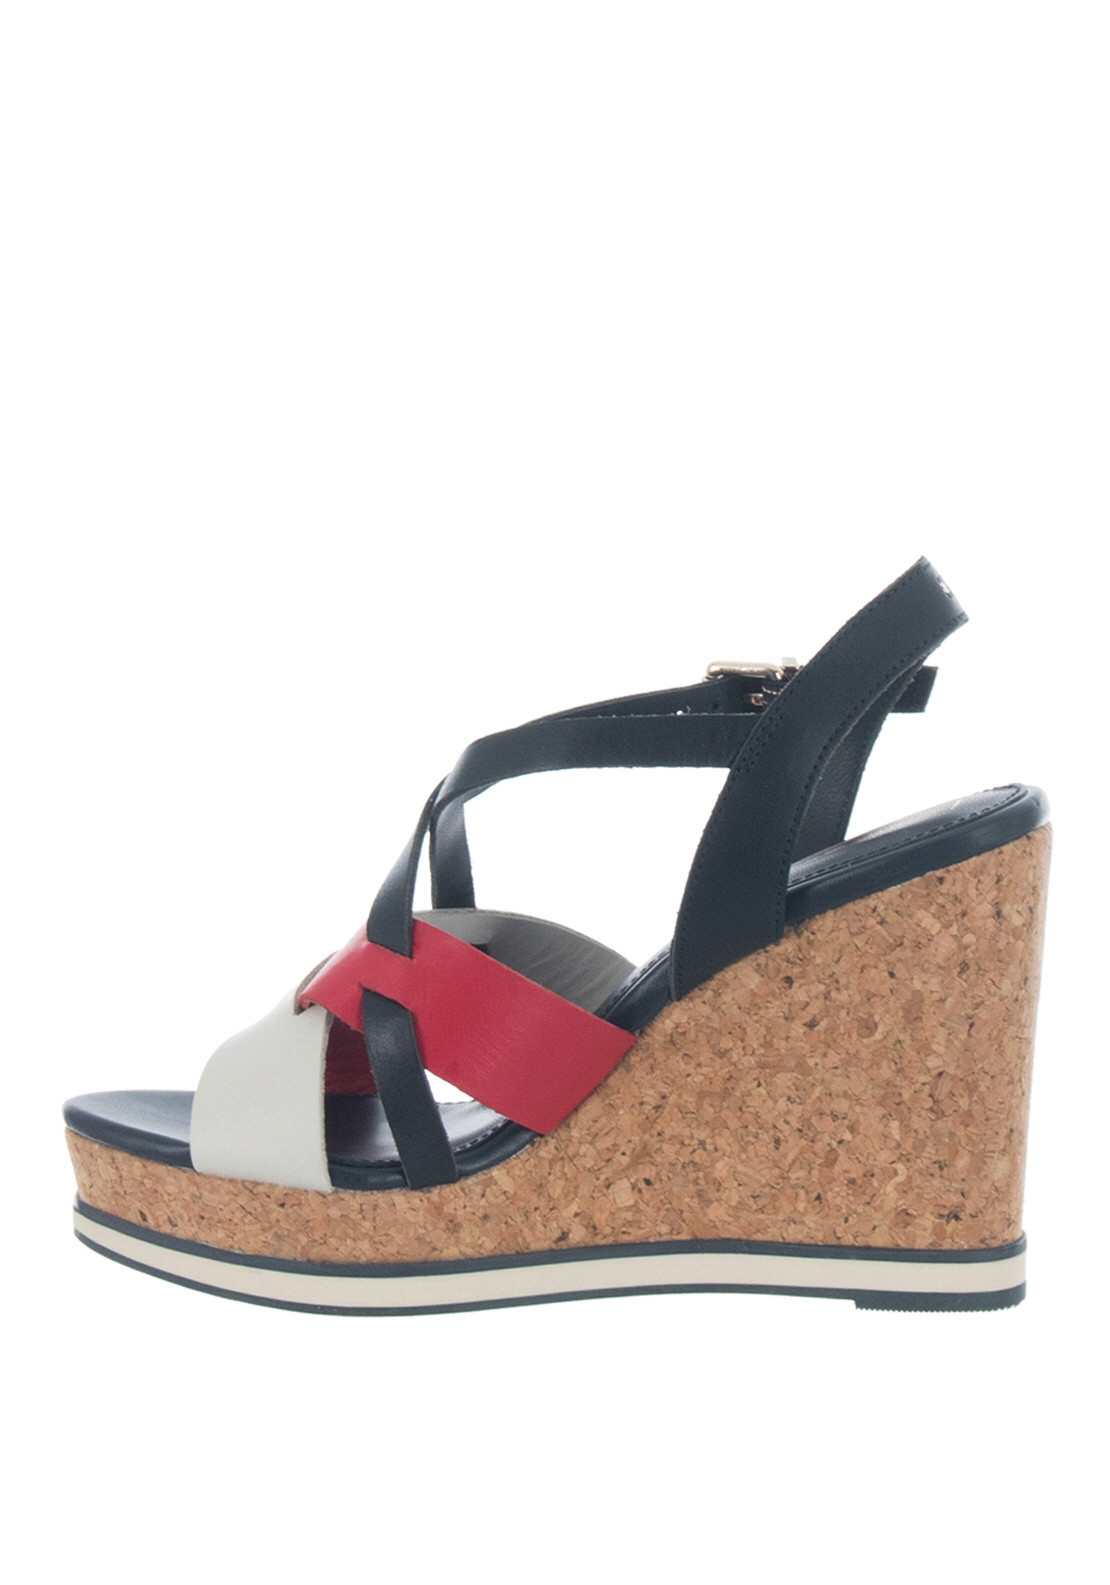 26e2903670c Tommy Hilfiger Womens Contrast Strap Wedge Sandals, Navy & Red